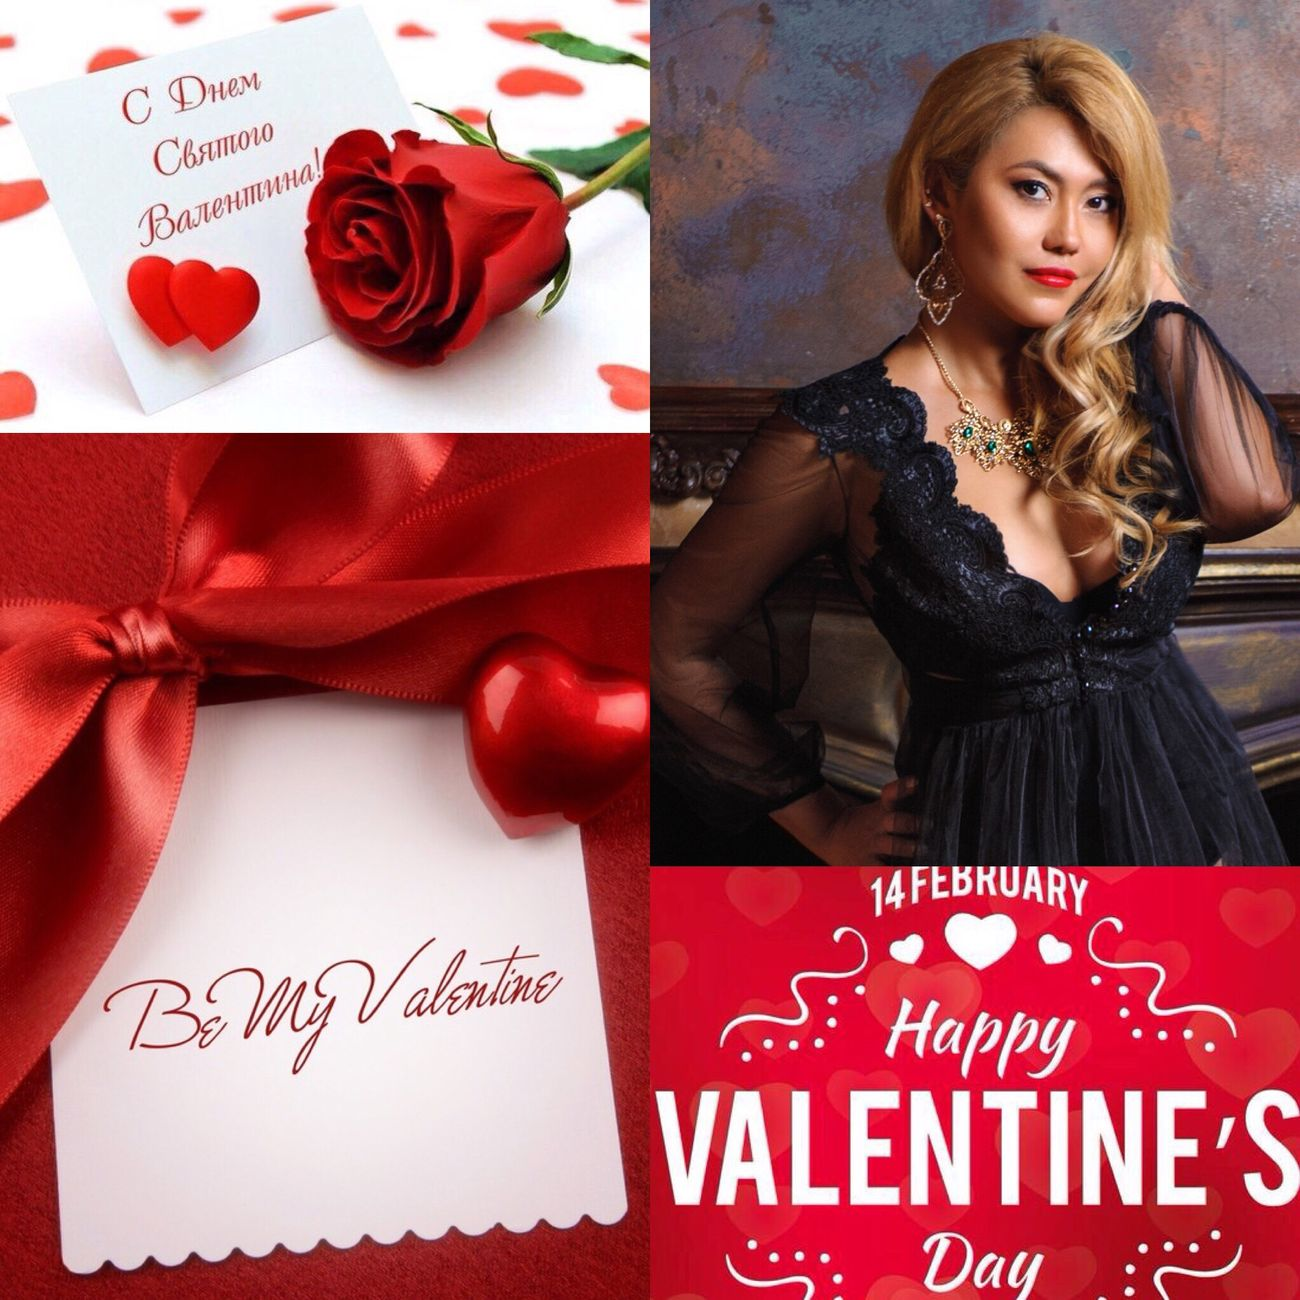 Valentine's Day - Holiday Beautiful Woman валентин праздник день Валентина